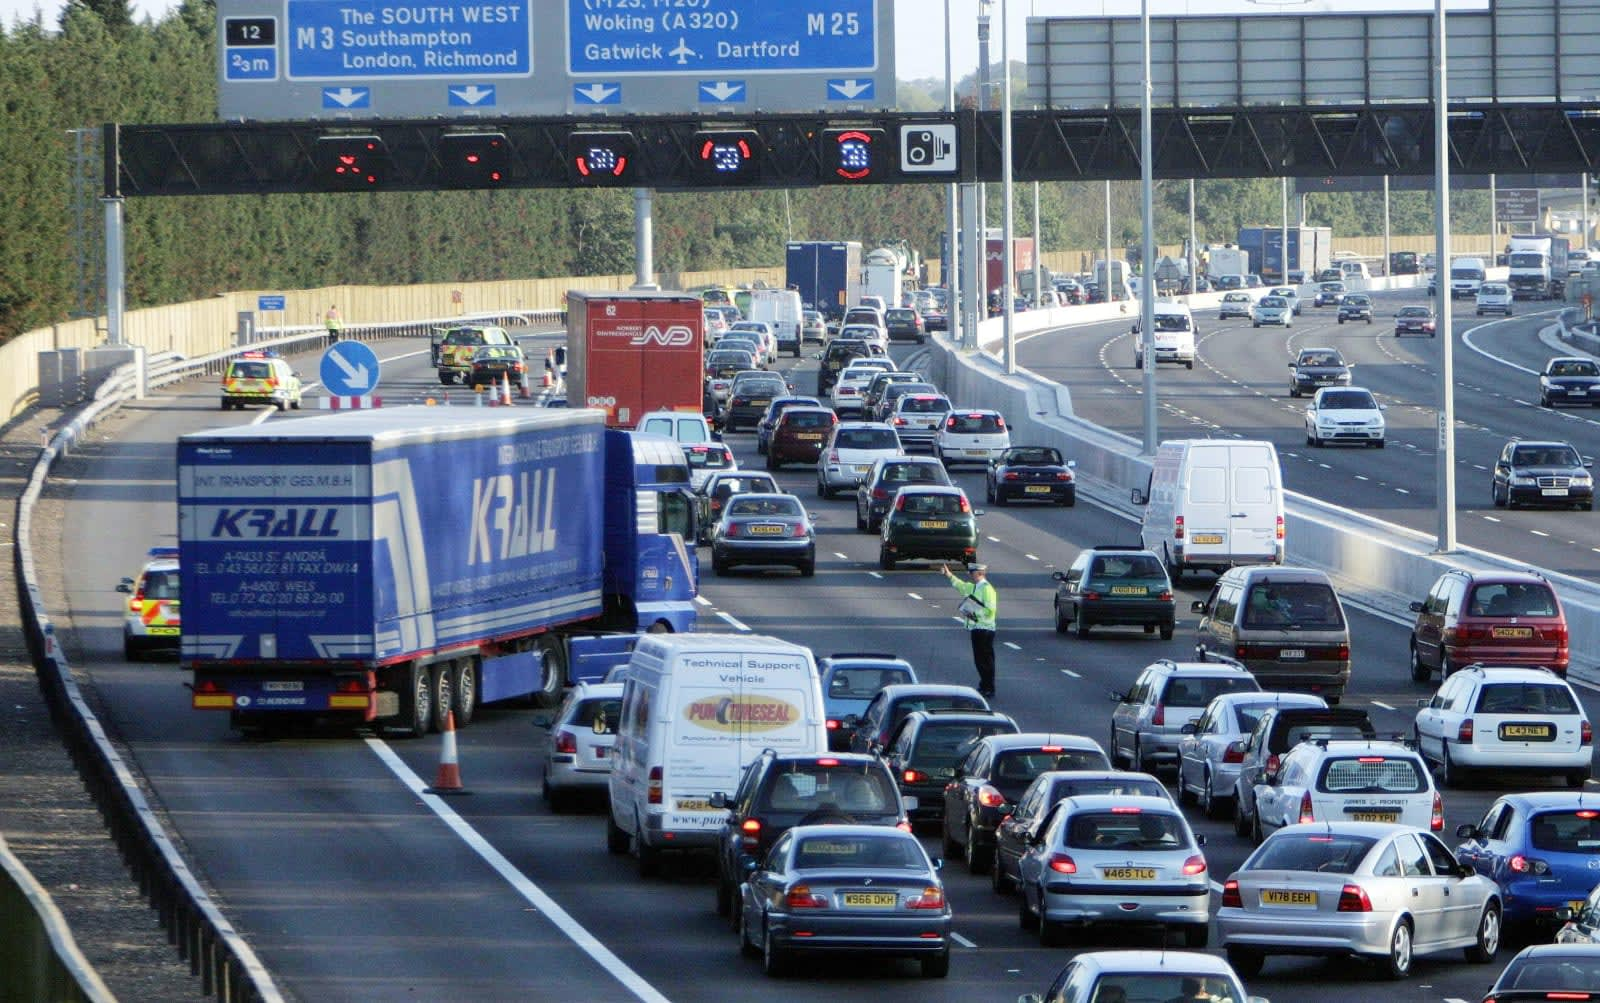 UK plans to let drivers report road accidents online